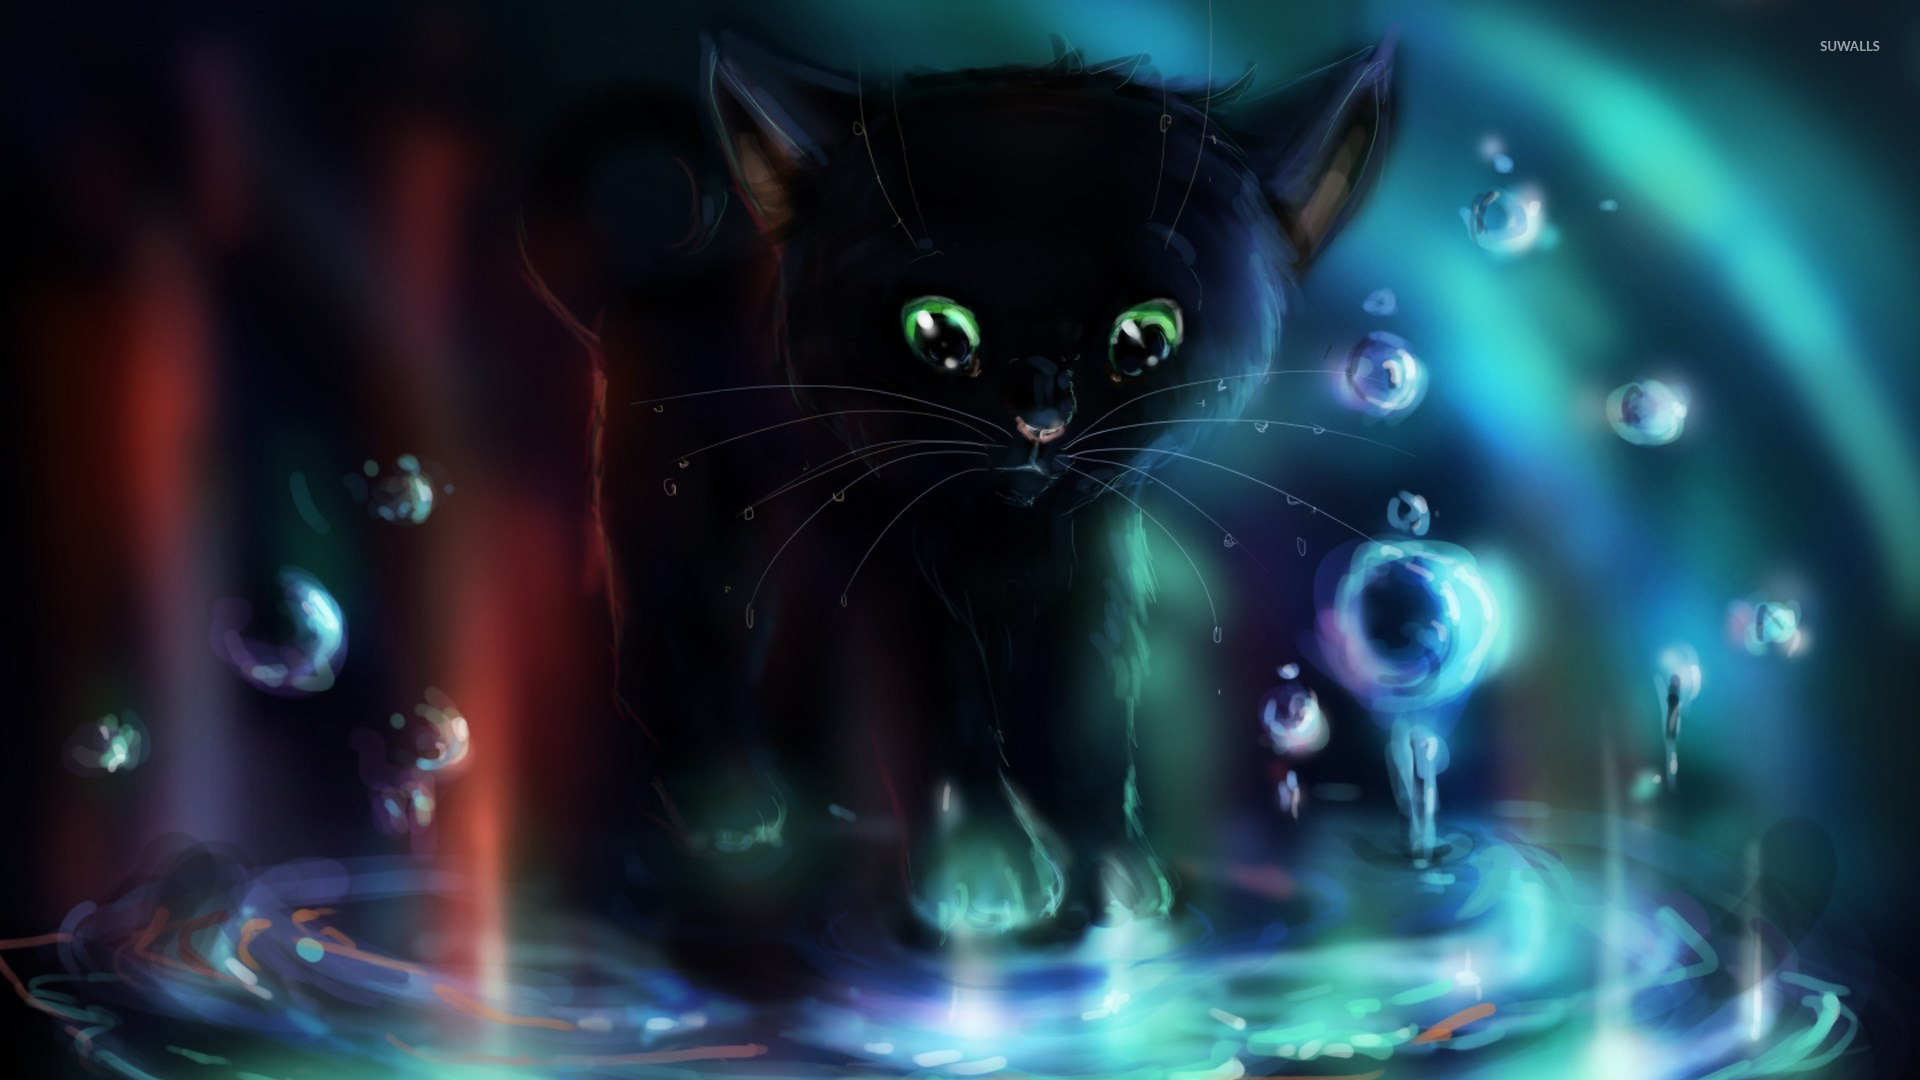 Black Kitten Playing In The Puddle Wallpaper Digital Art Wallpapers 23806